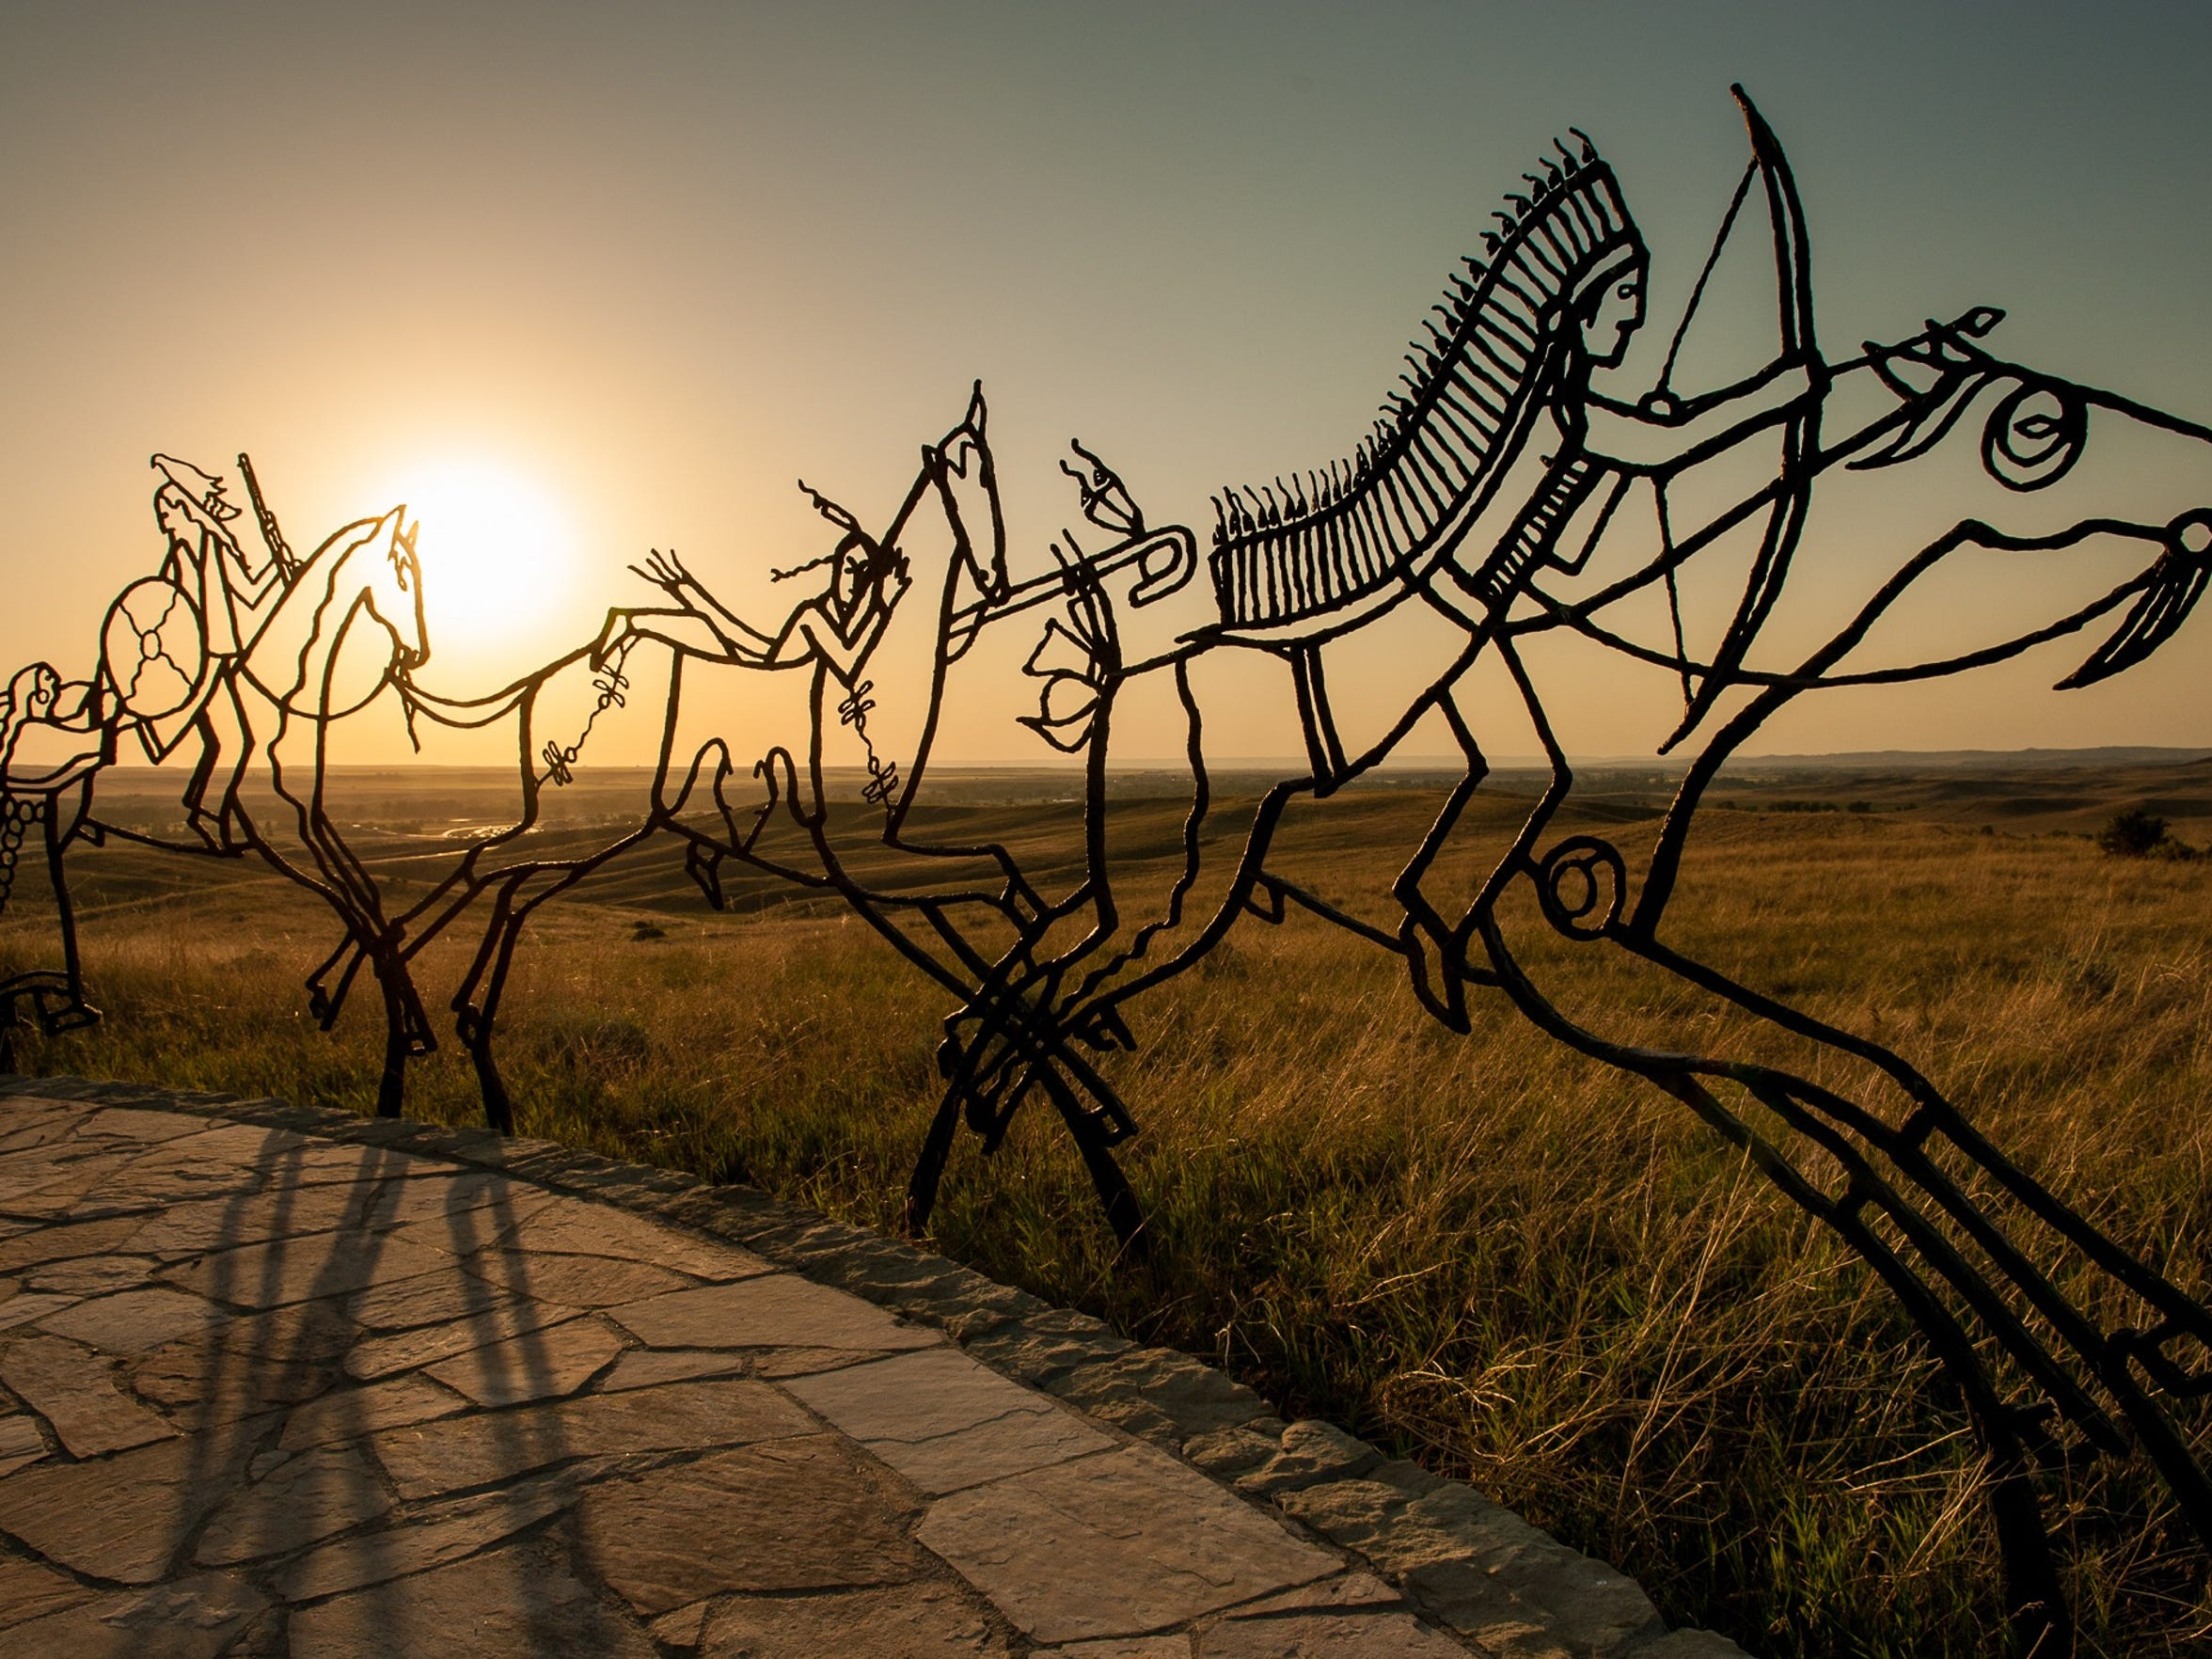 The Indian Memorial at the Little Bighorn National Battlefield honors the Cheyenne, Sioux and Arapaho who fought to preserve their way of life.